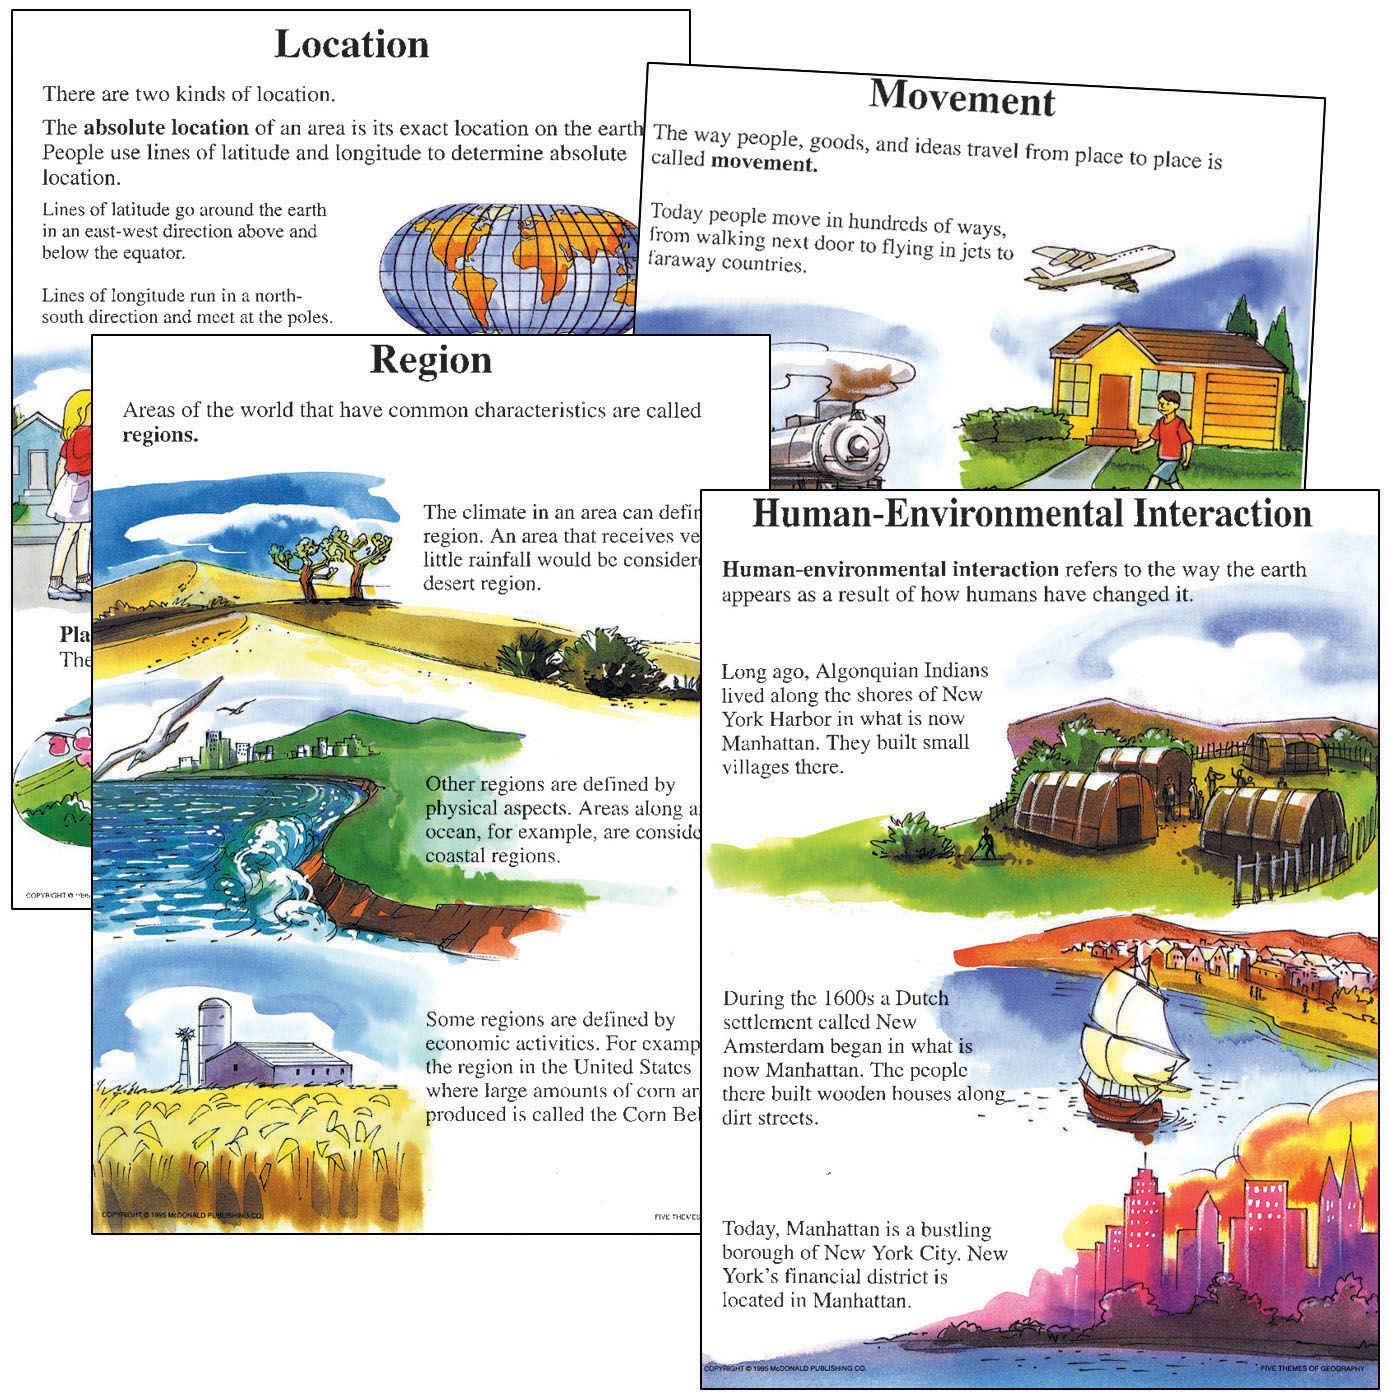 5 themes of geography from learnist | Geography | Pinterest ...